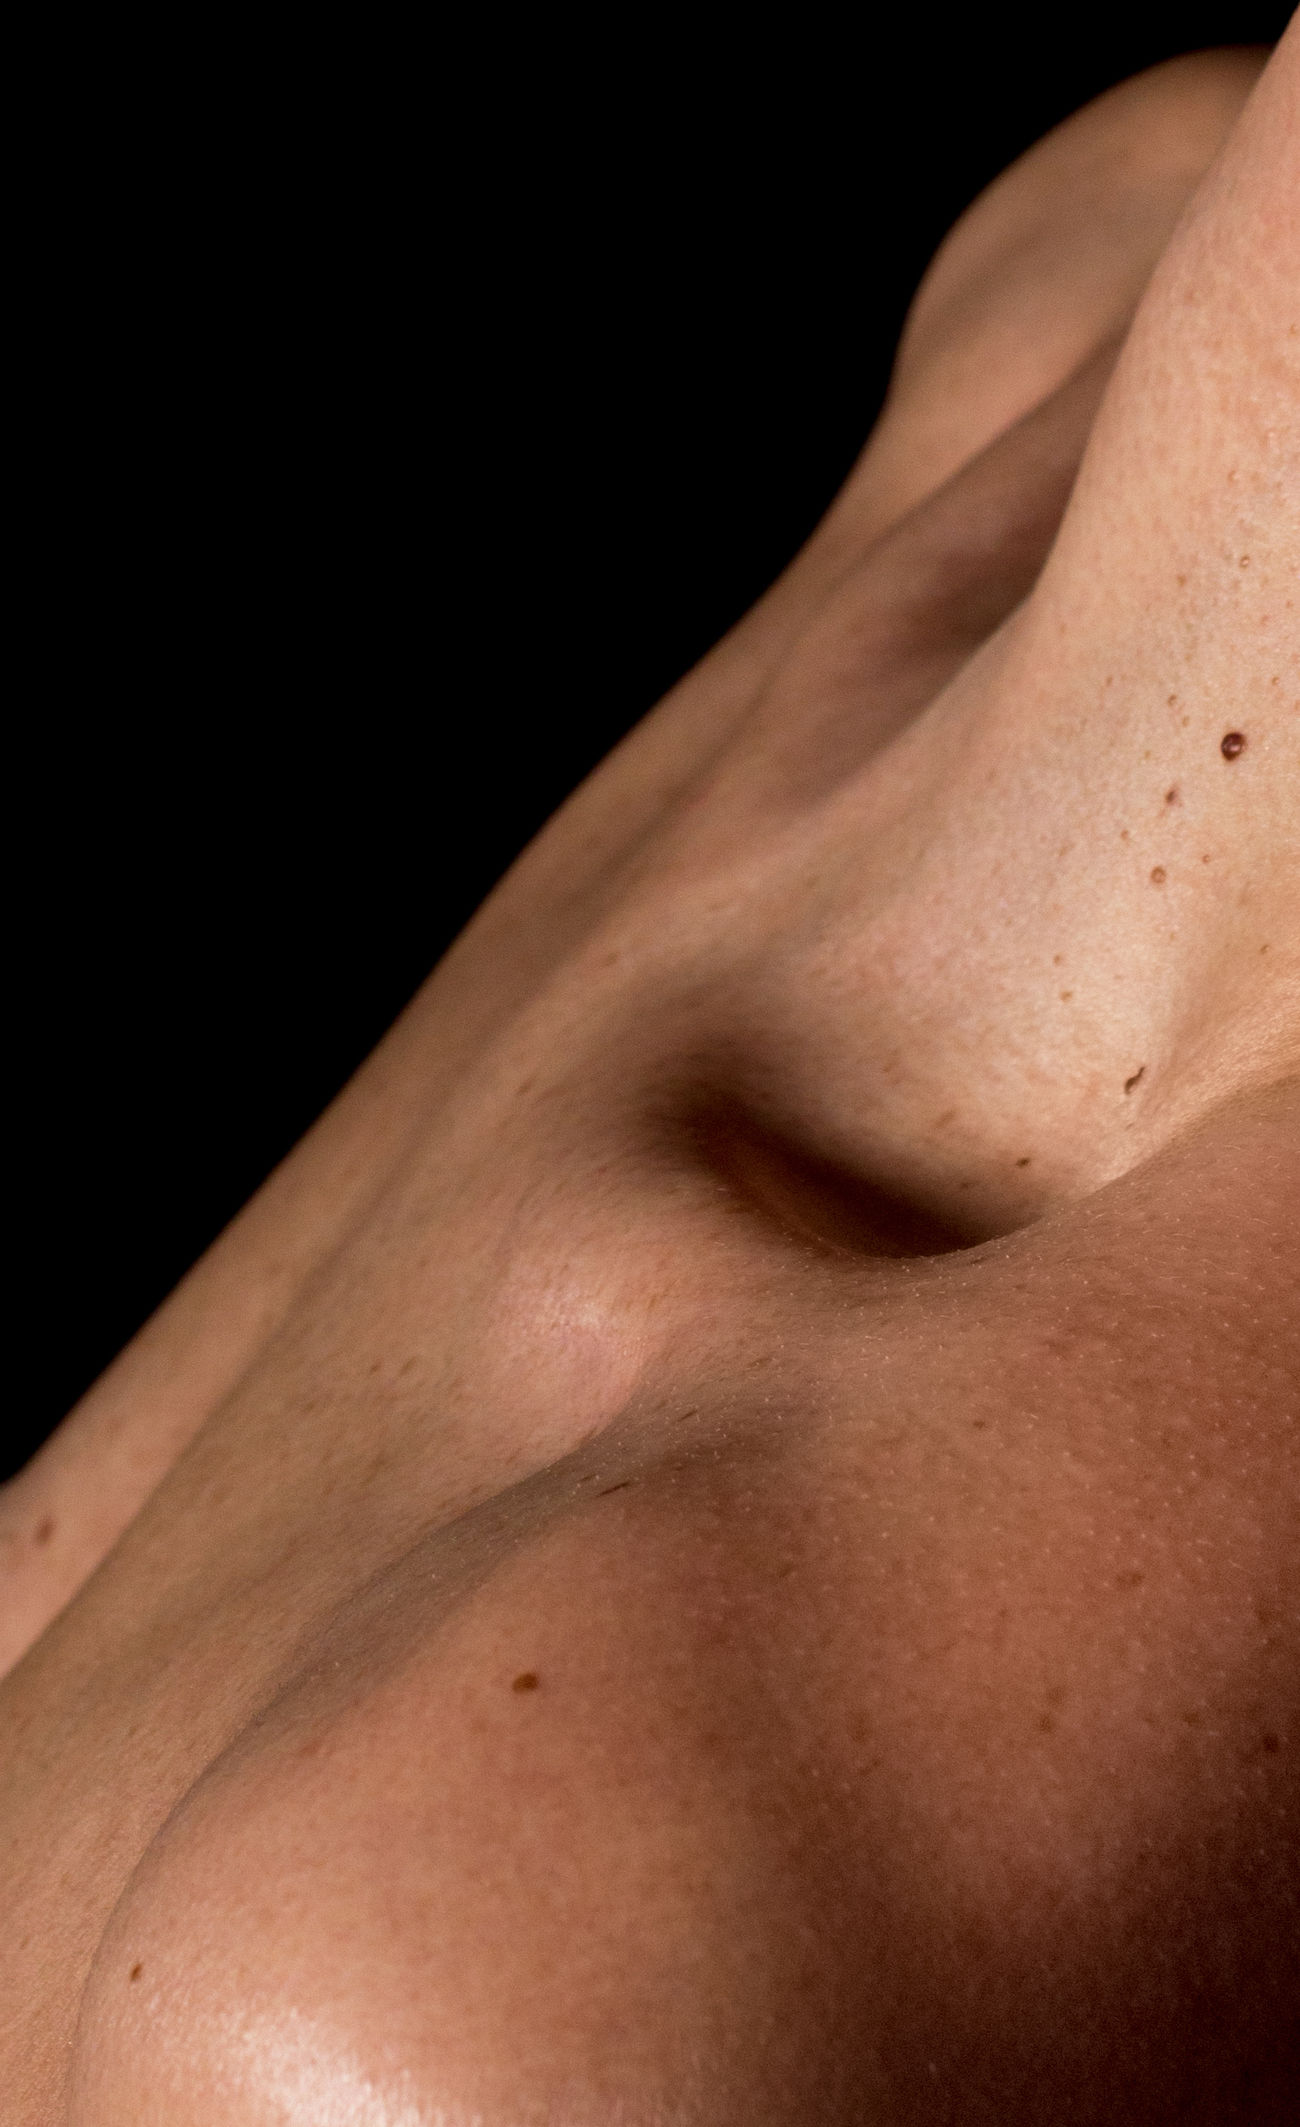 Bodydetail Clavical Close-up Detail Nudeclavical Nudeneck Nudescapula Nudeshoulders Part Of Shoulders Skin Womanchest Woman Lentiginesskin Neck Nudeartphotography Nudeskin Nudesillhoutte